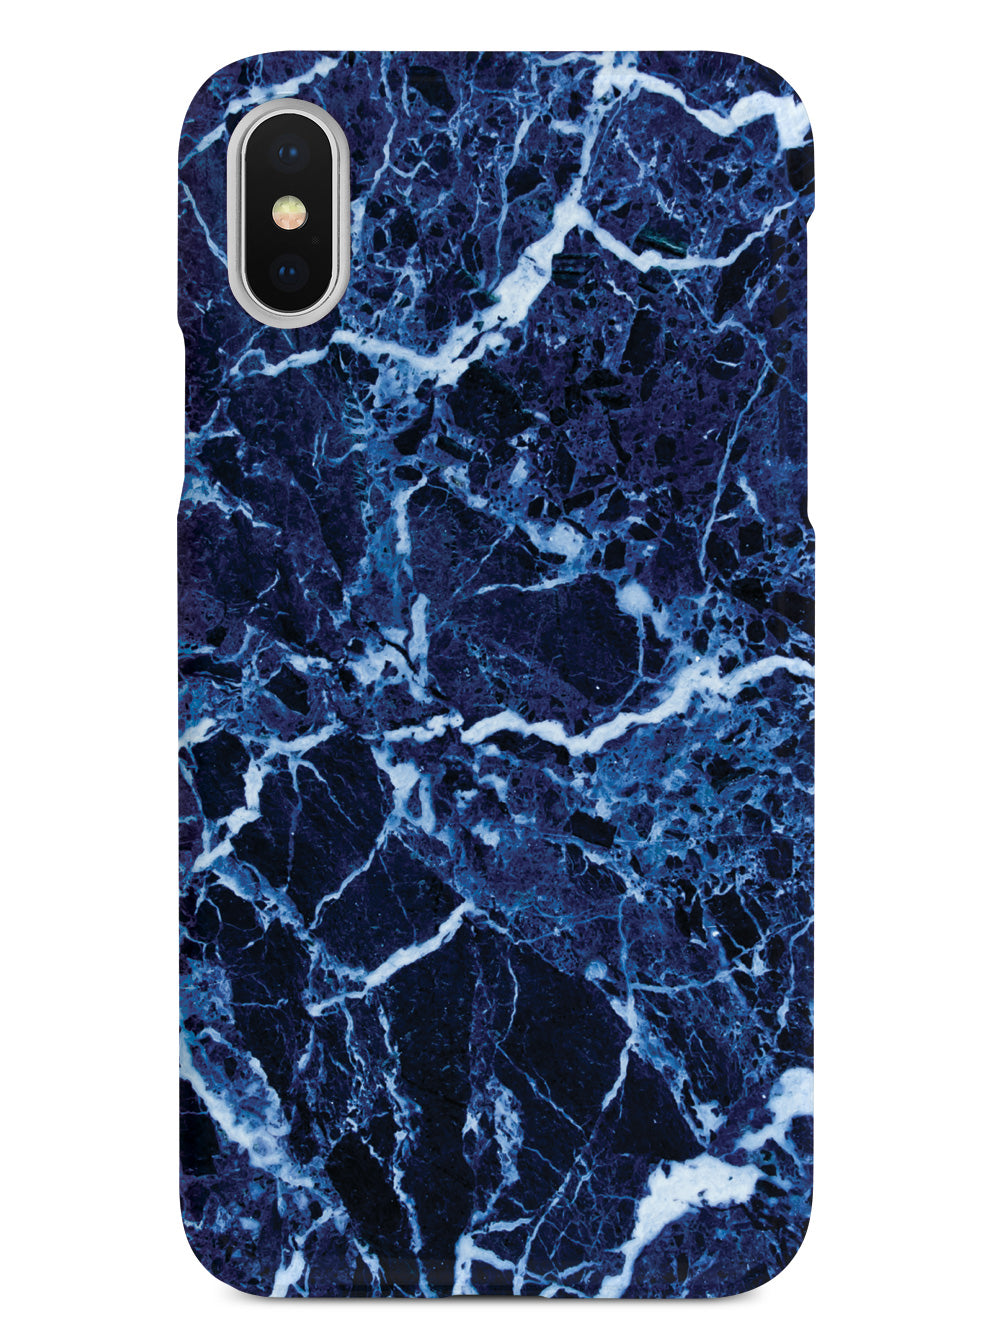 Textured Blue Marble Case